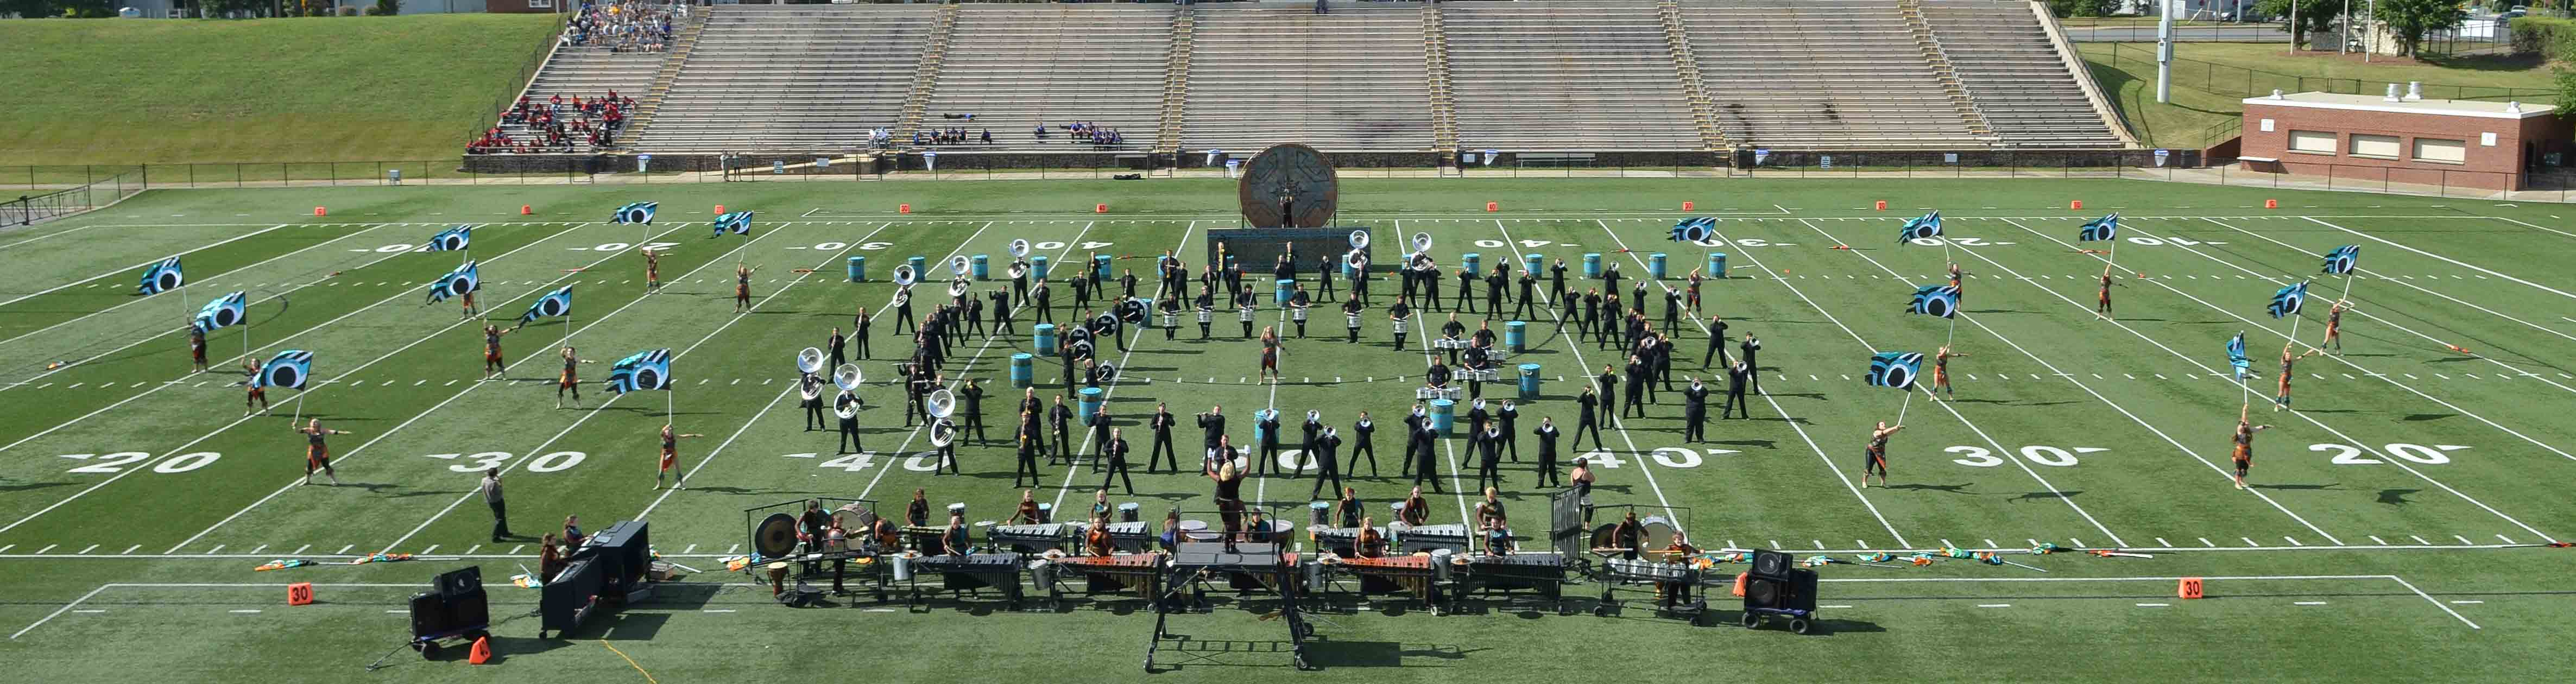 Clover Band 2014